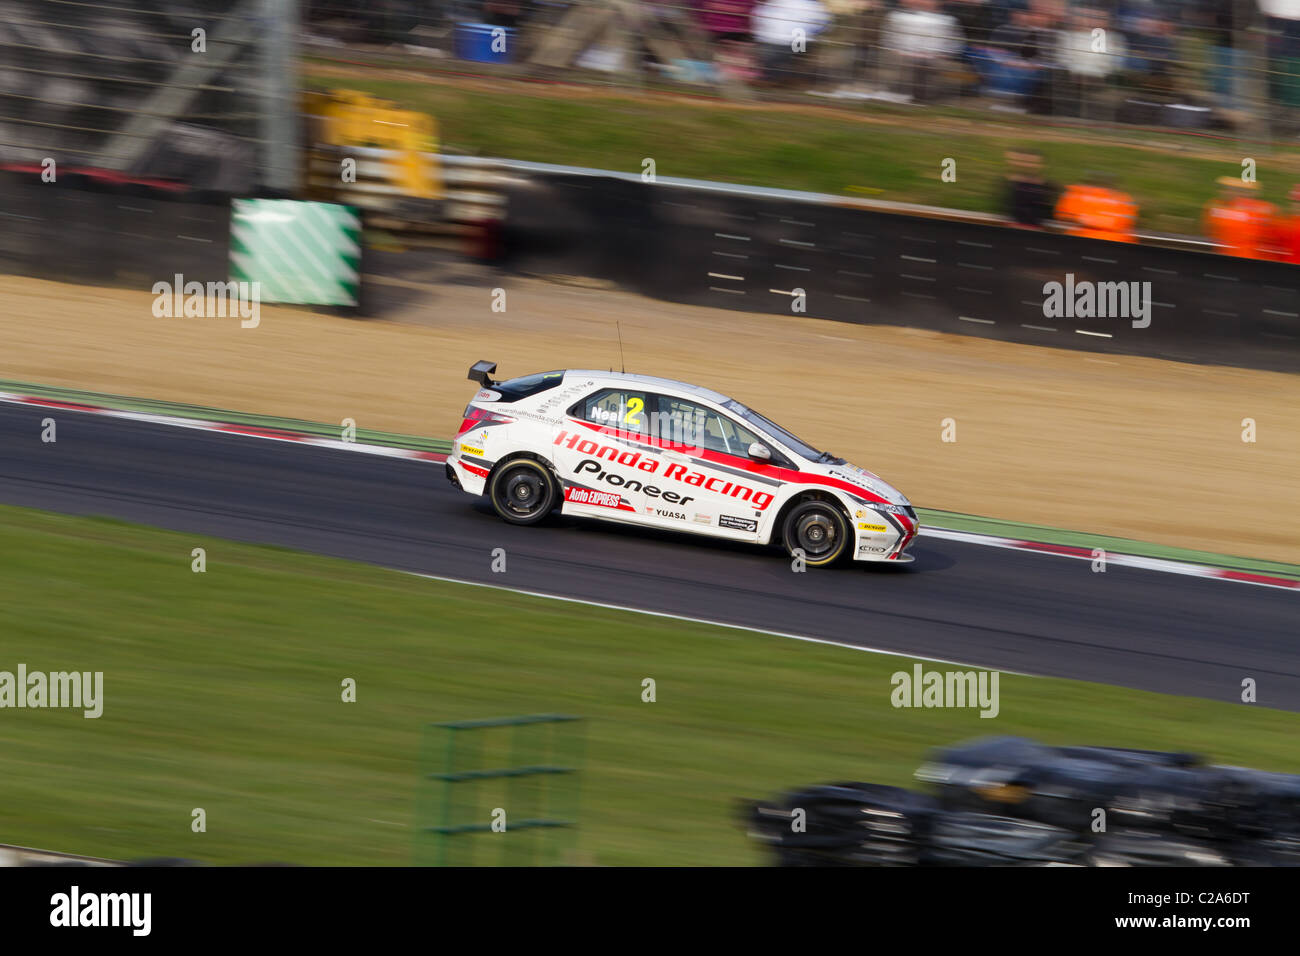 Matt Neal's Honda Civic at the 2011 opening round of the British Touring Car Championship at Brands Hatch. - Stock Image